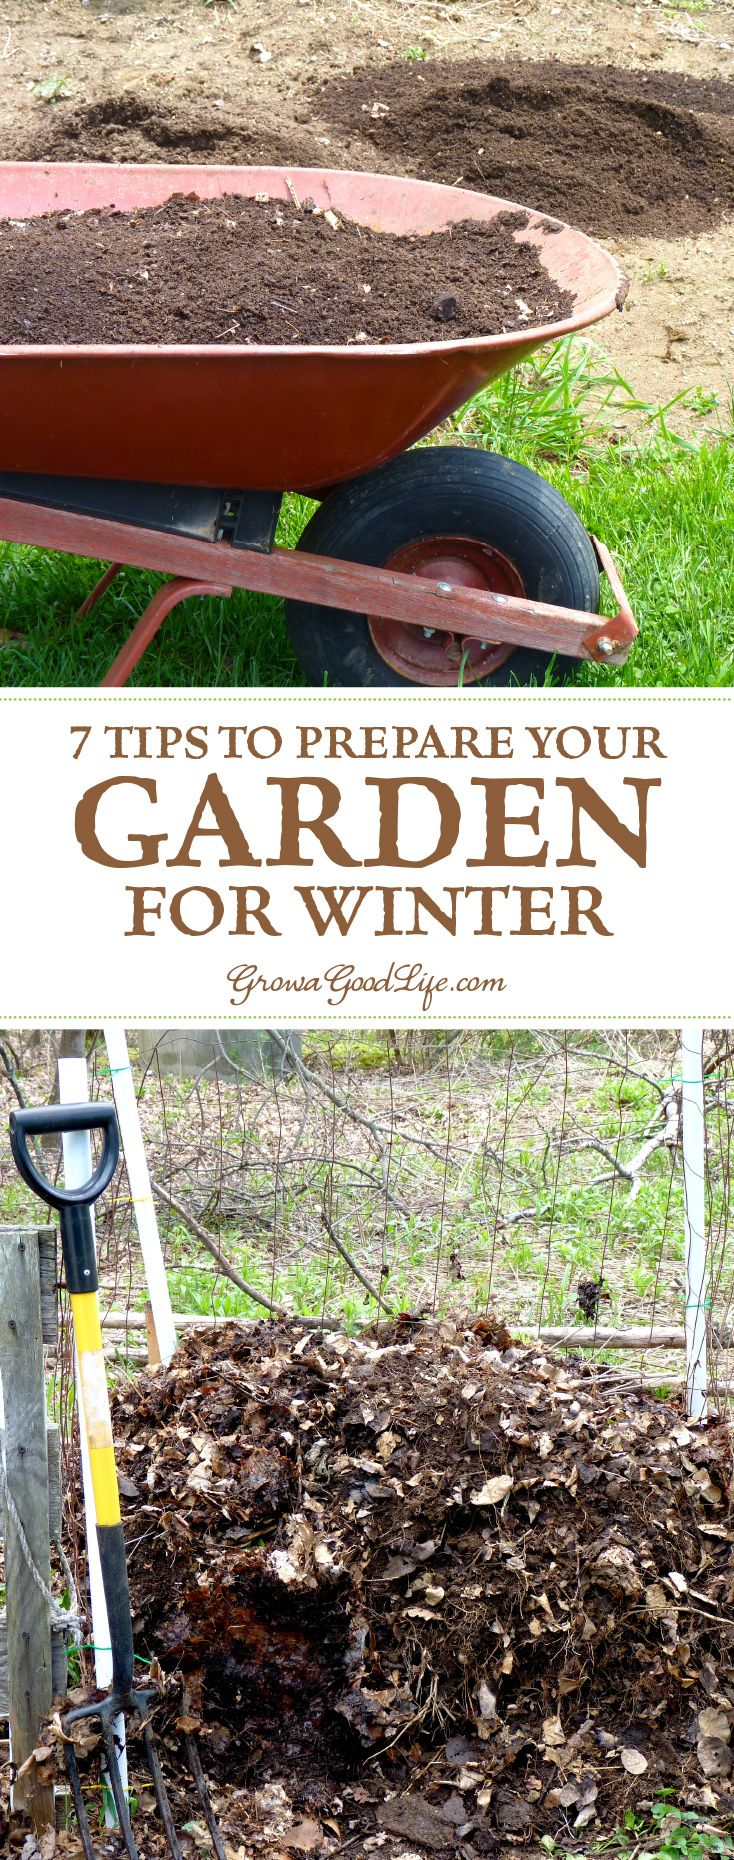 7 tips to prepare your vegetable garden for winter grow - Prepare vegetable garden for winter ...